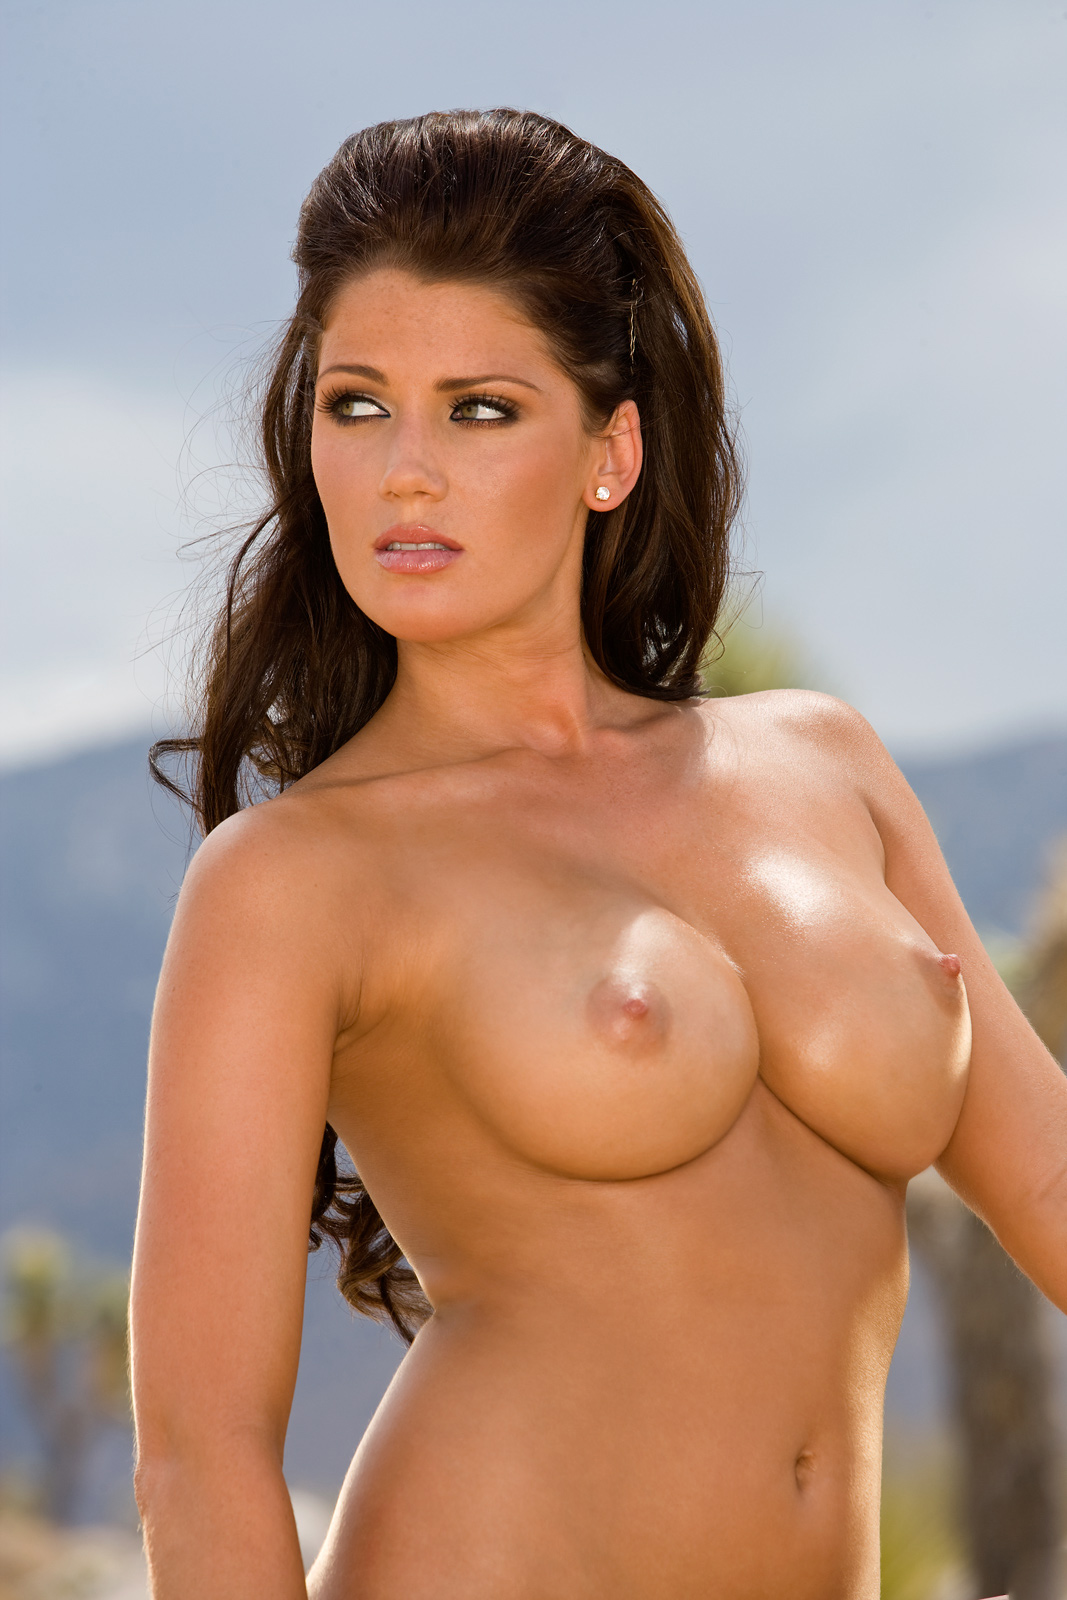 Join. happens. Crystal mccahill naked blowjobs have